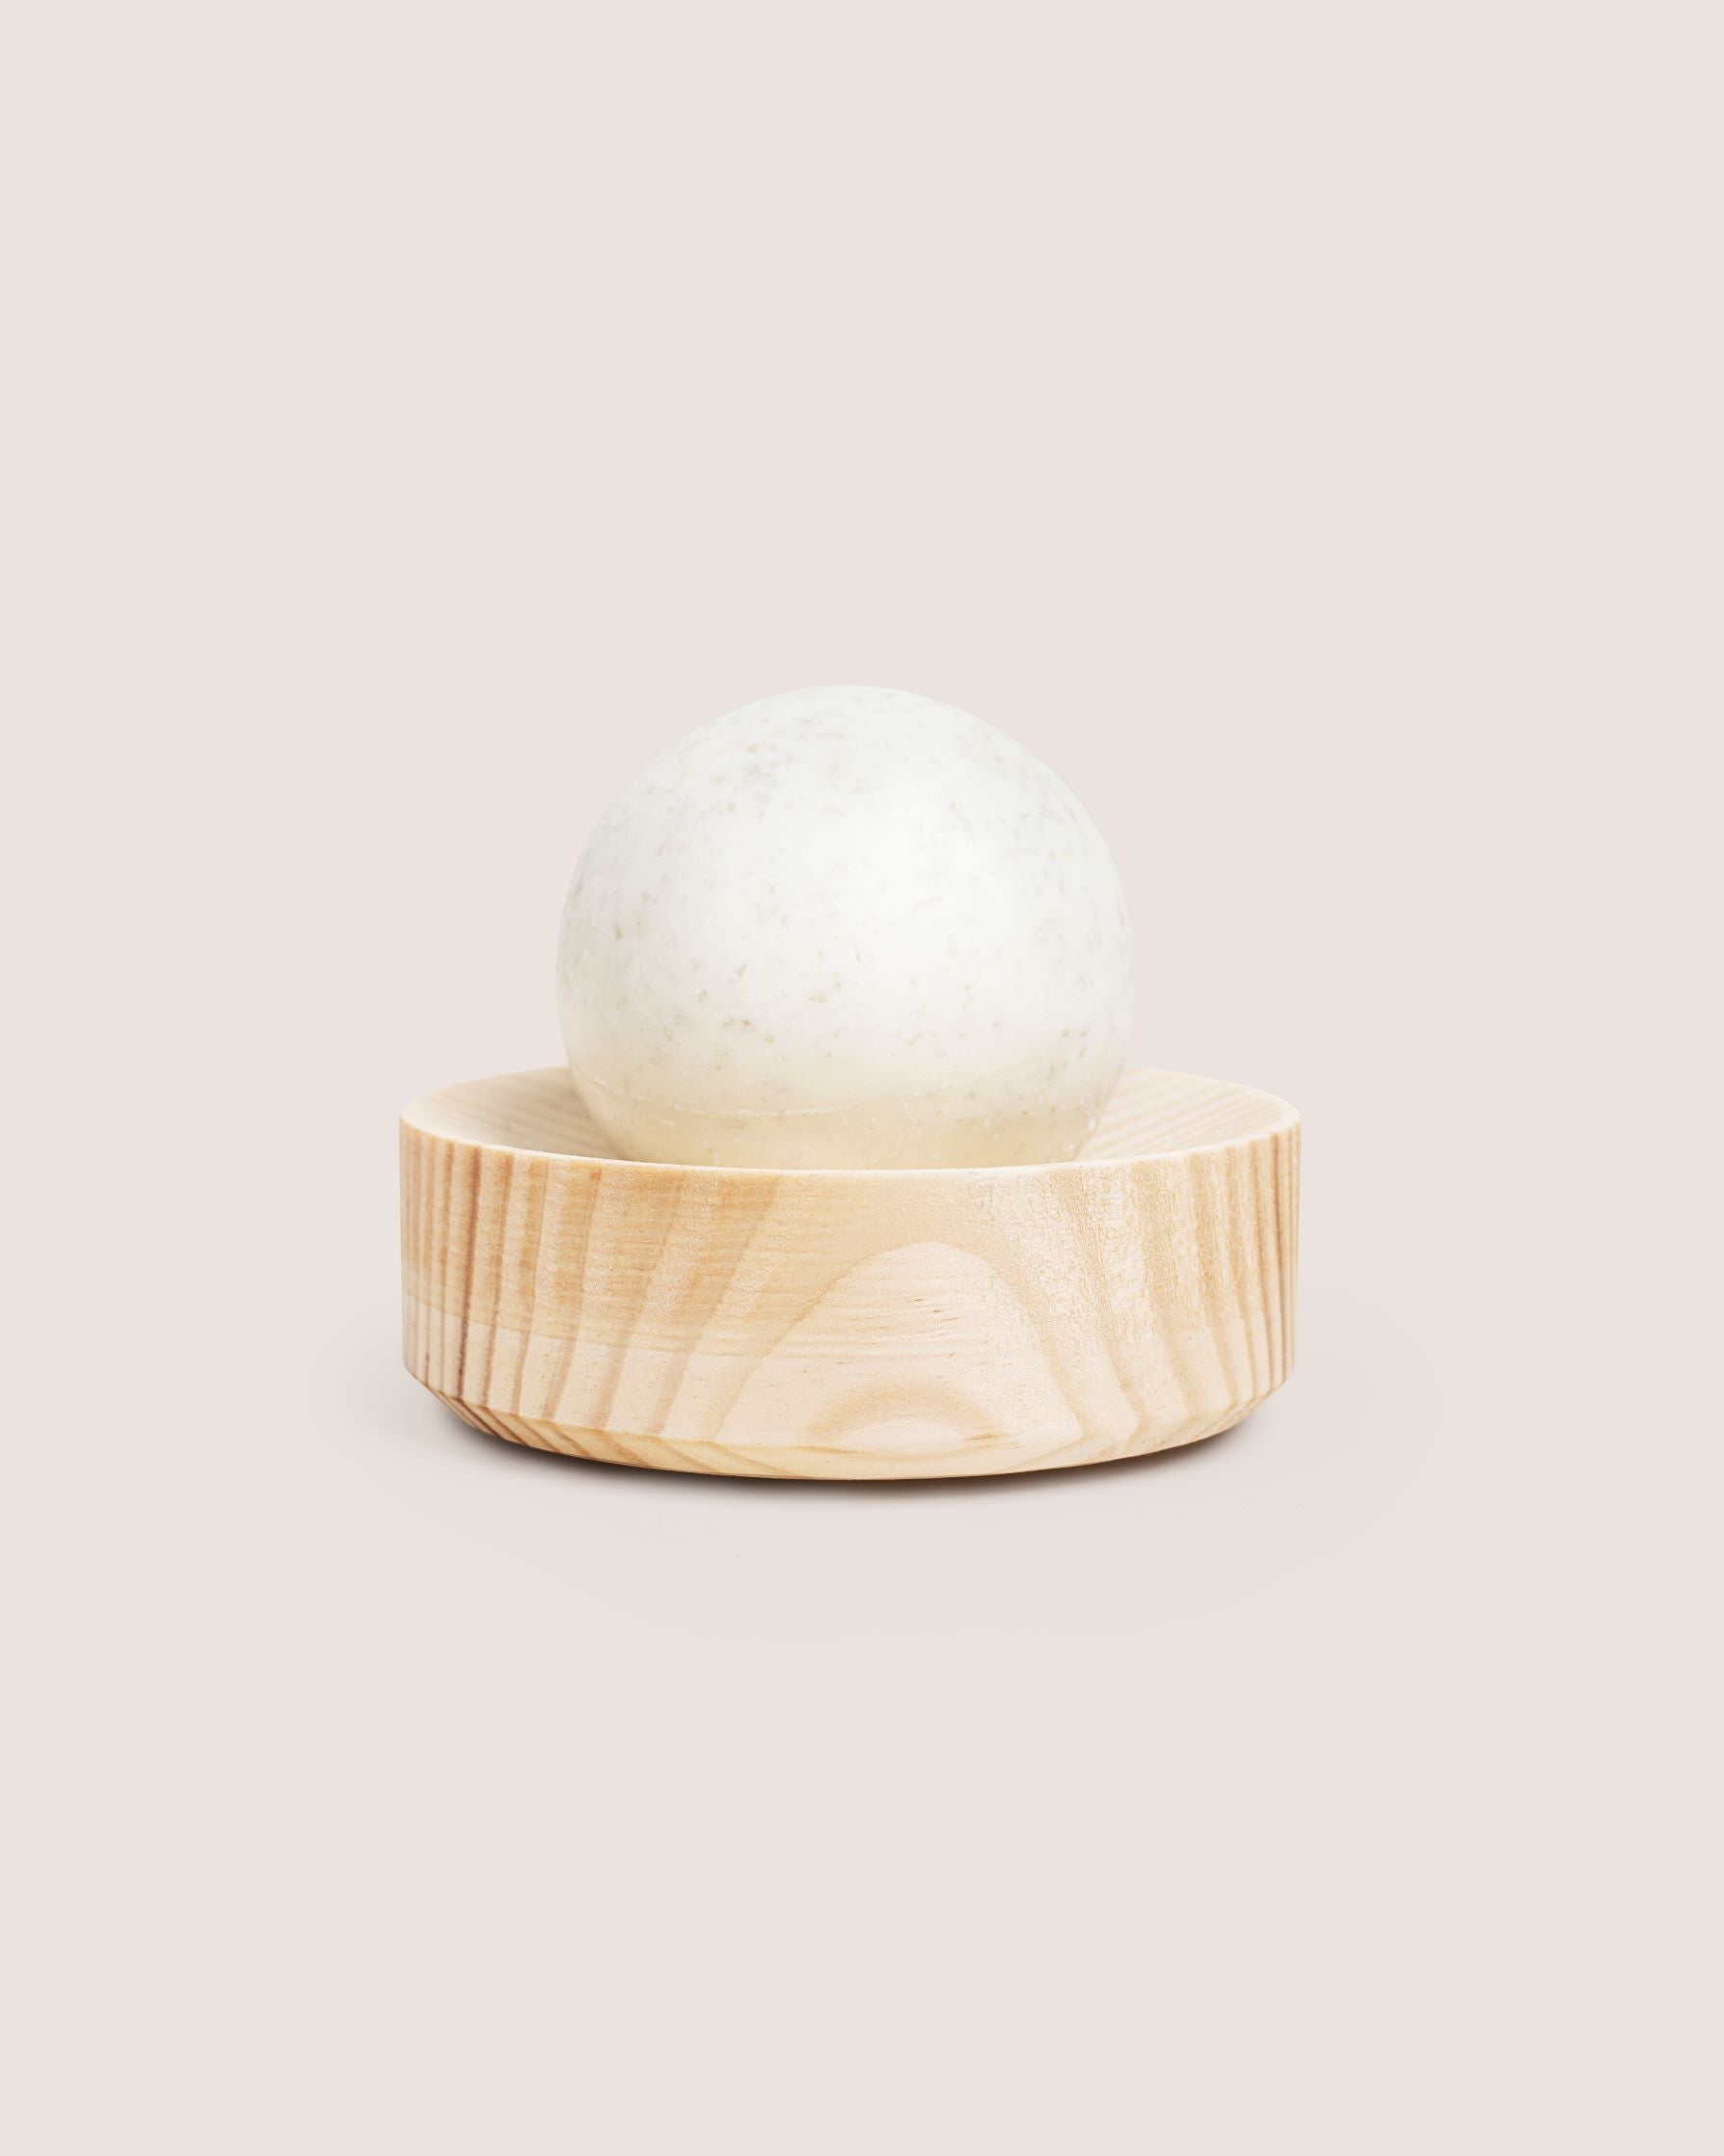 pine-peppermint saltsoap set  natural round